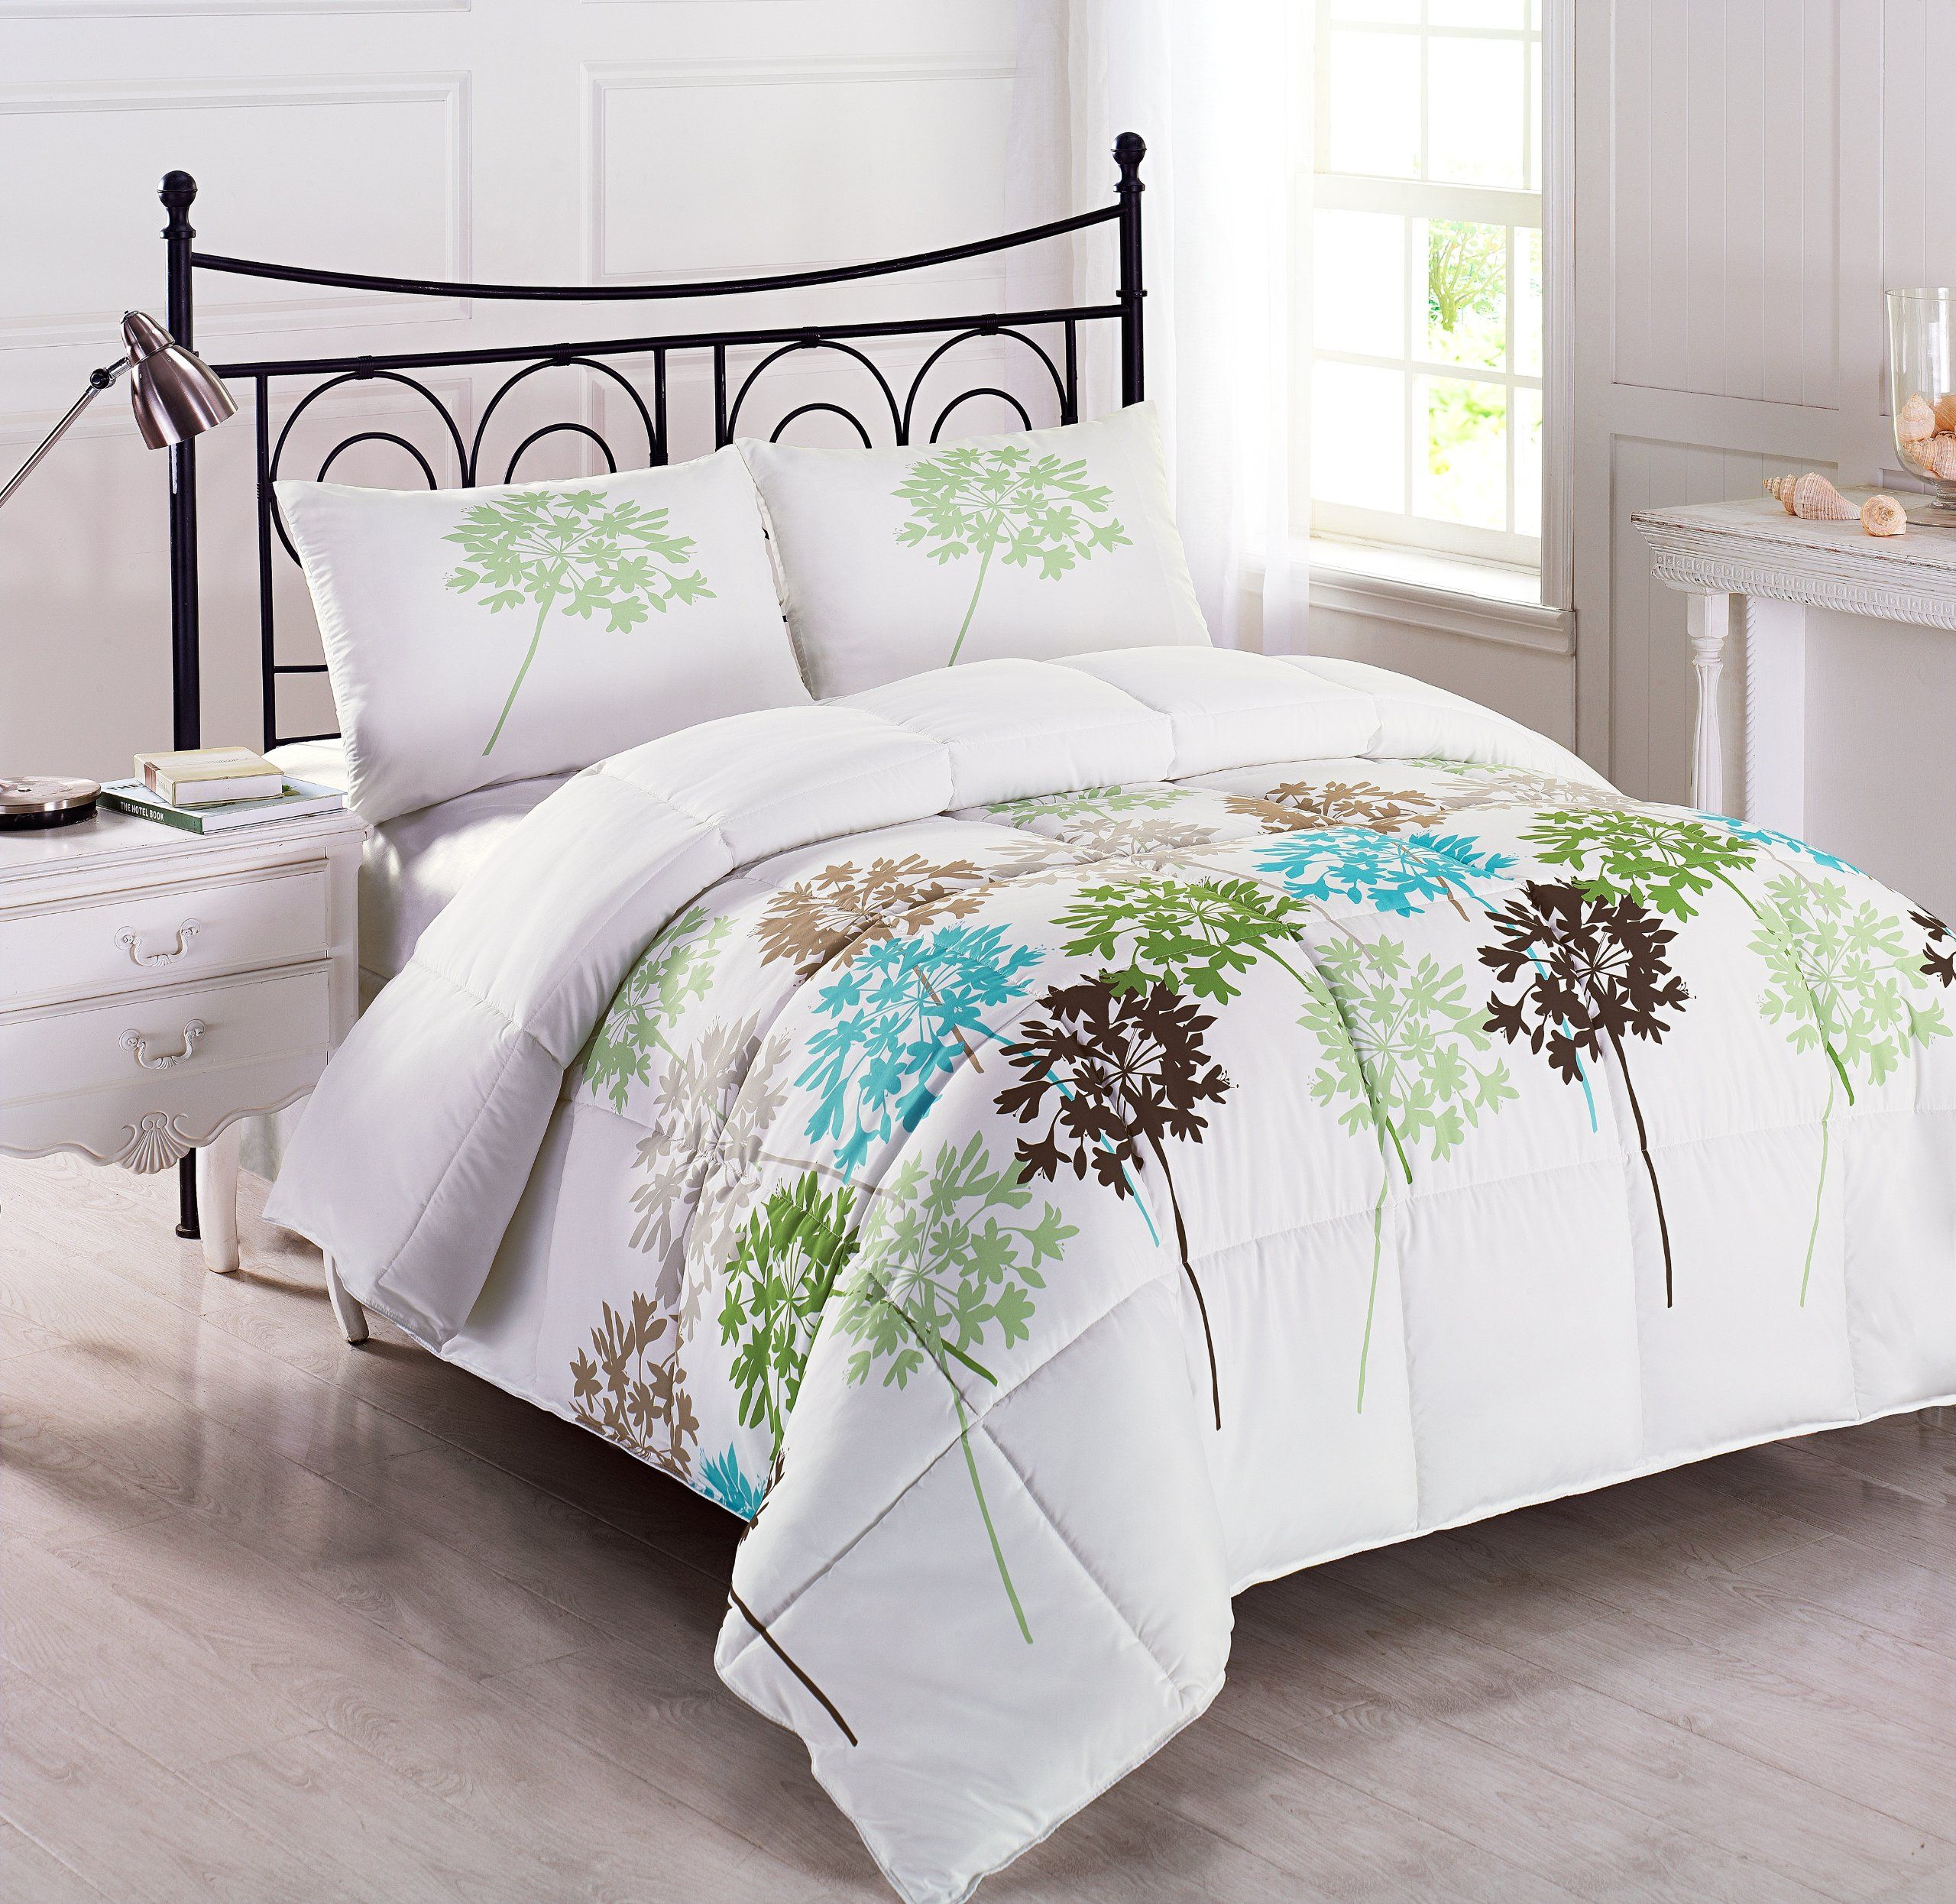 Cozy Beddings Allium 3 Piece Reversible Down Alternative Floral